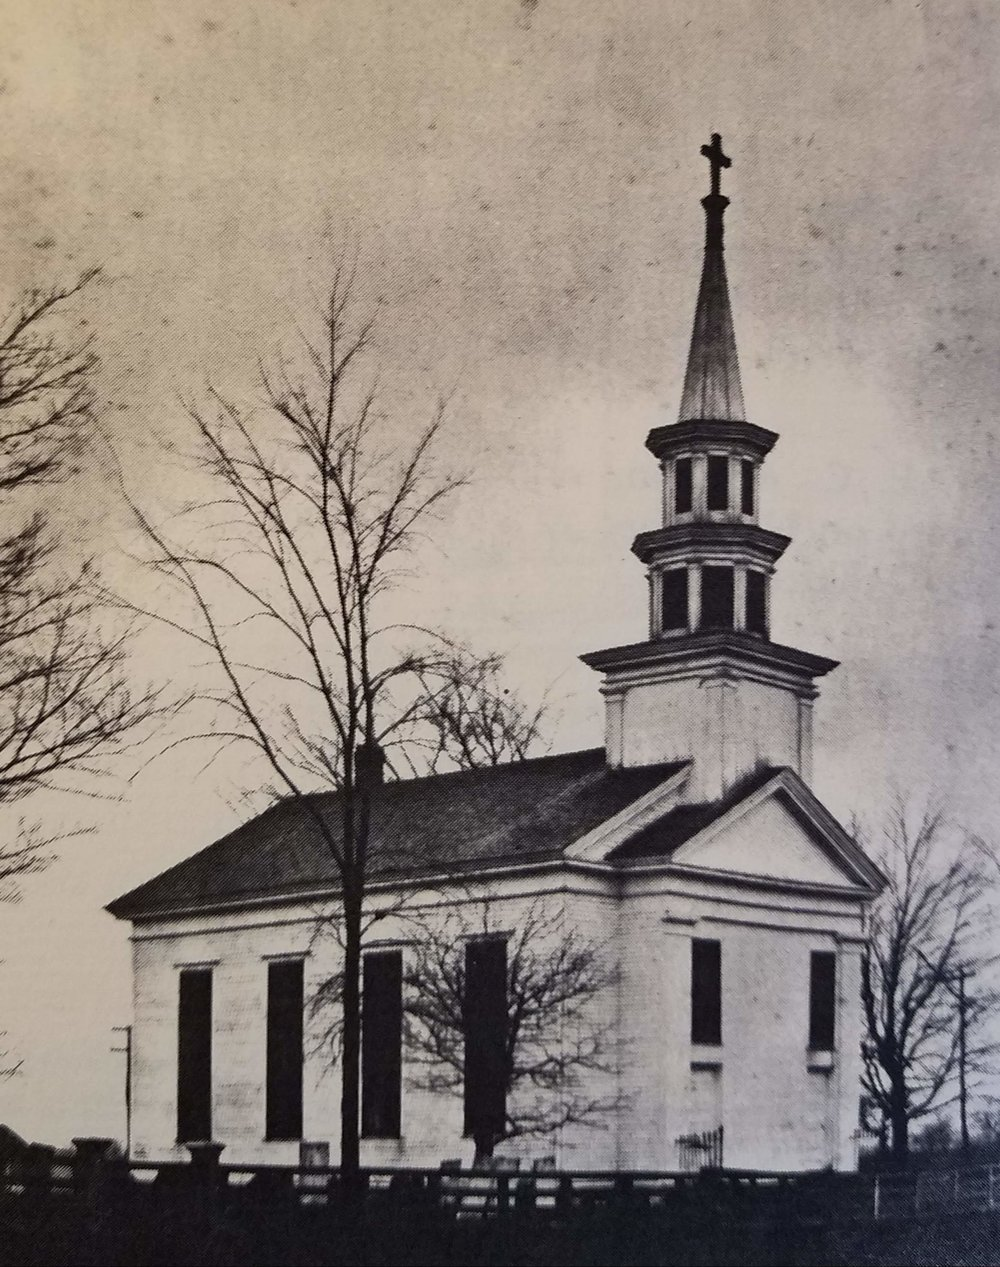 Early photo of Christ Church Redding